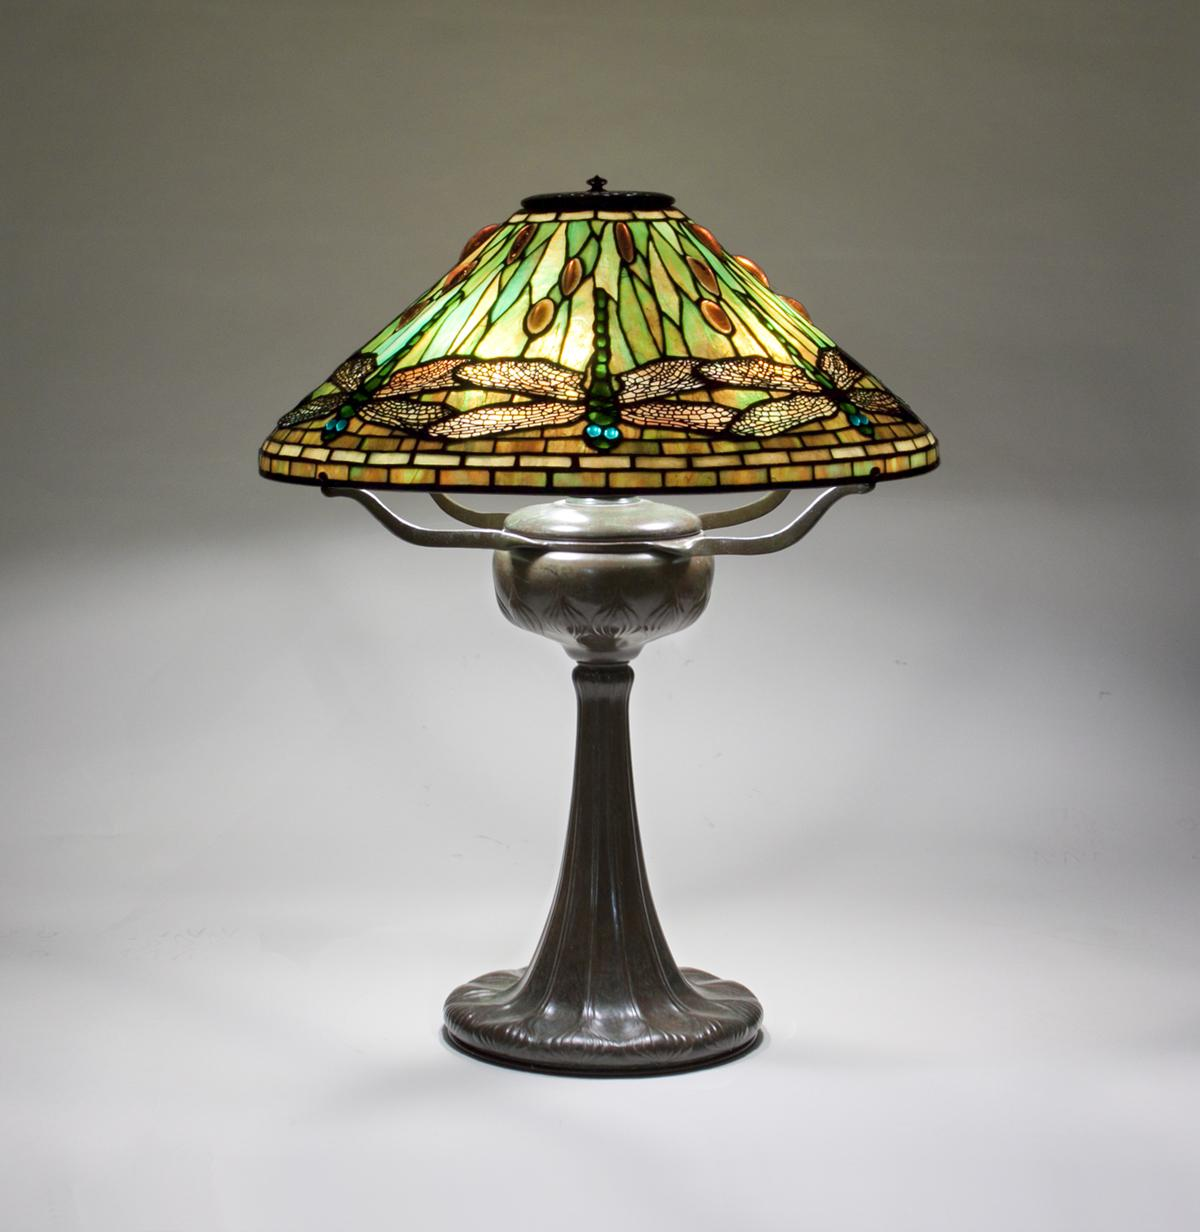 Tiffany Studios  Dragonfly Table Lamp 1